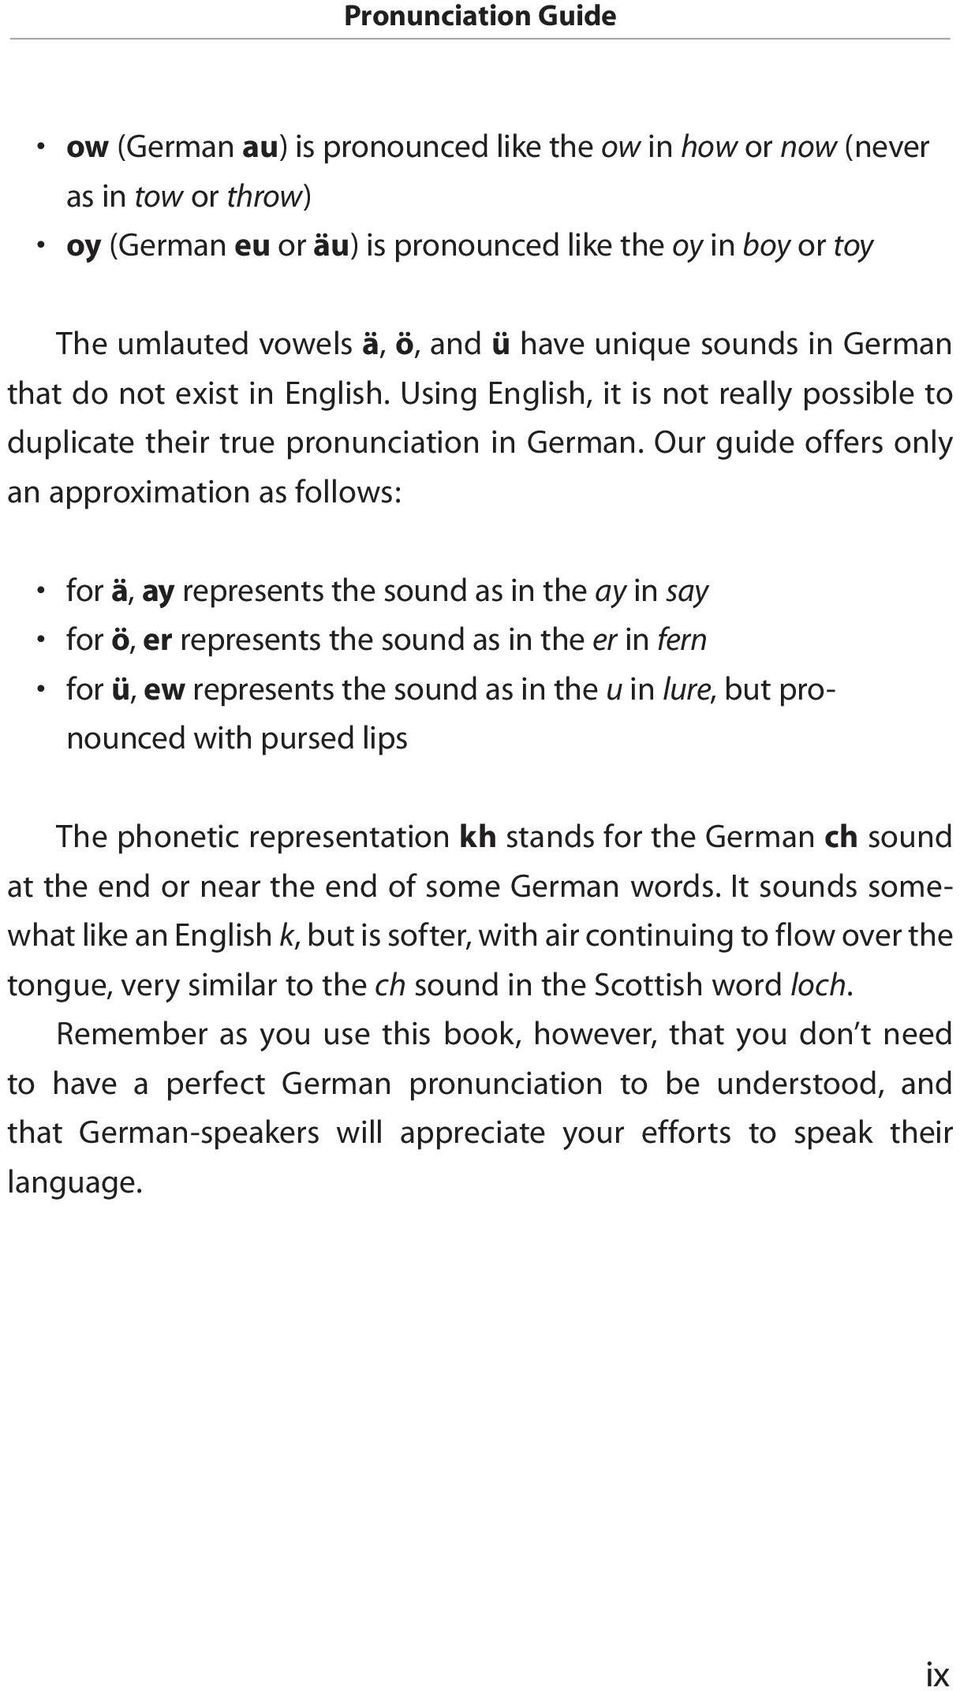 Our guide offers only an approximation as follows: for ä, ay represents the sound as in the ay in say for ö, er represents the sound as in the er in fern for ü, ew represents the sound as in the u in